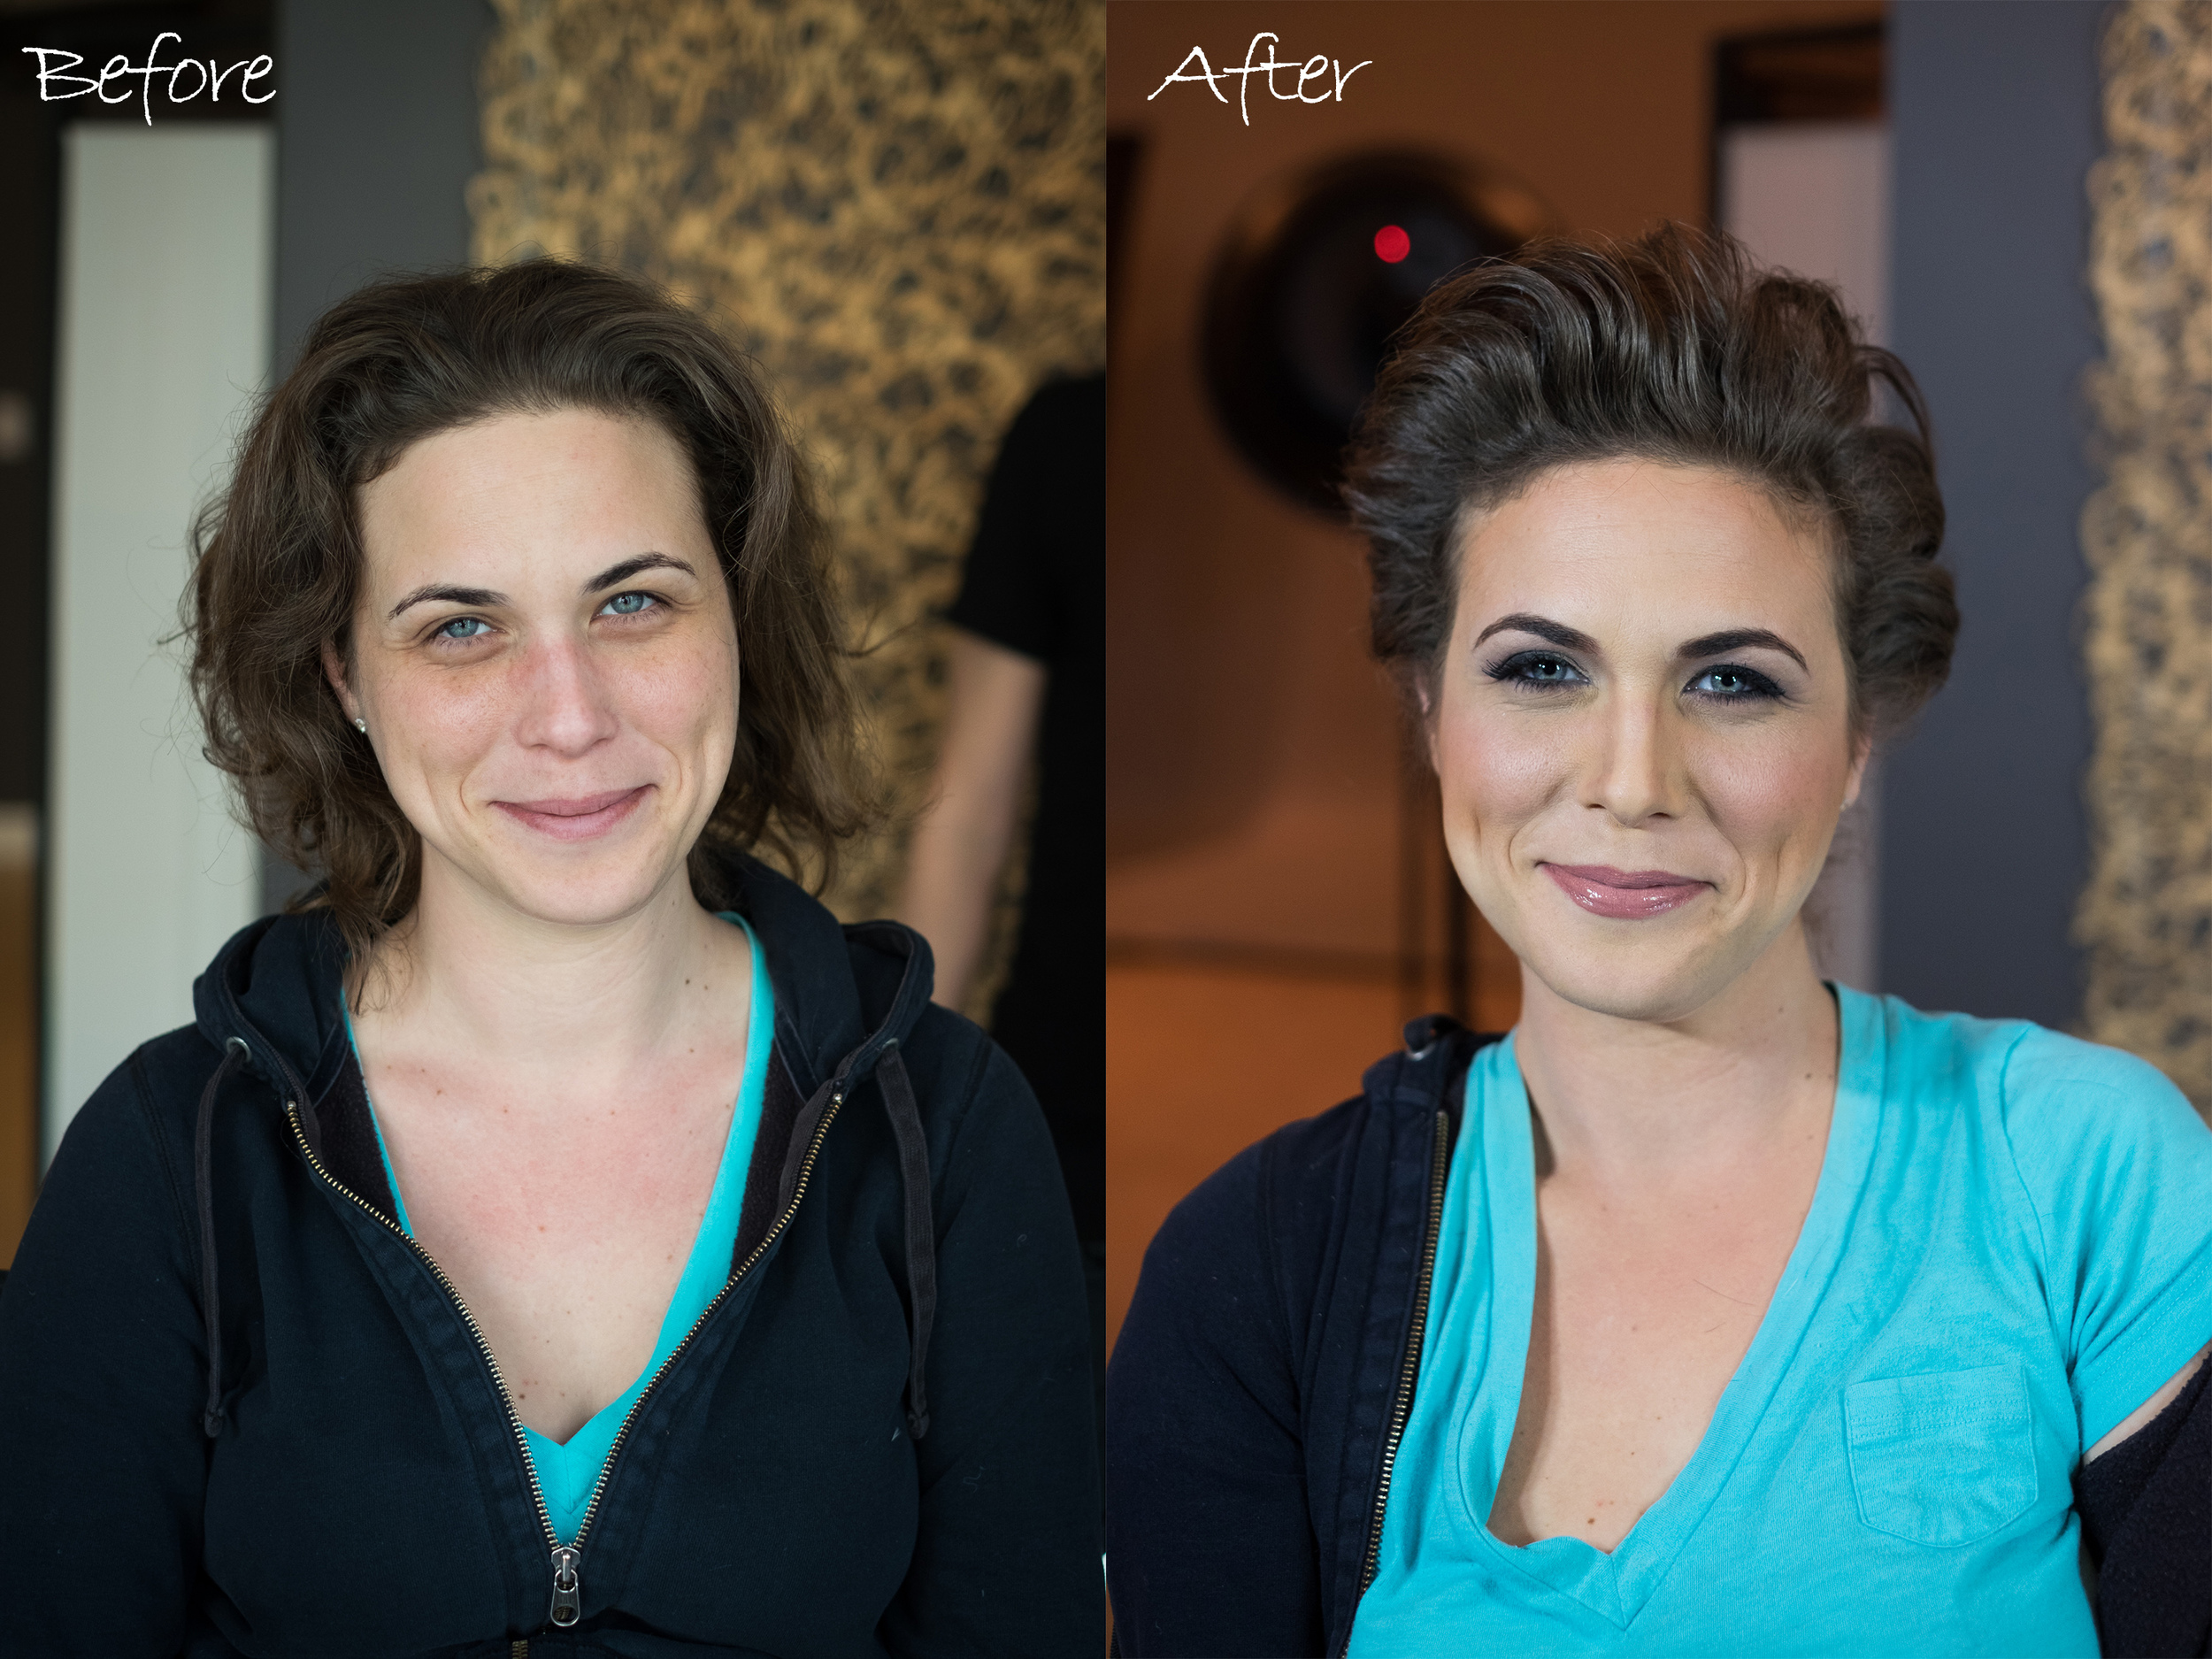 Looking gorgeous before, and after! But it never hurts to highlight our best features.  Hair & Makeup by Enrique Enriquez